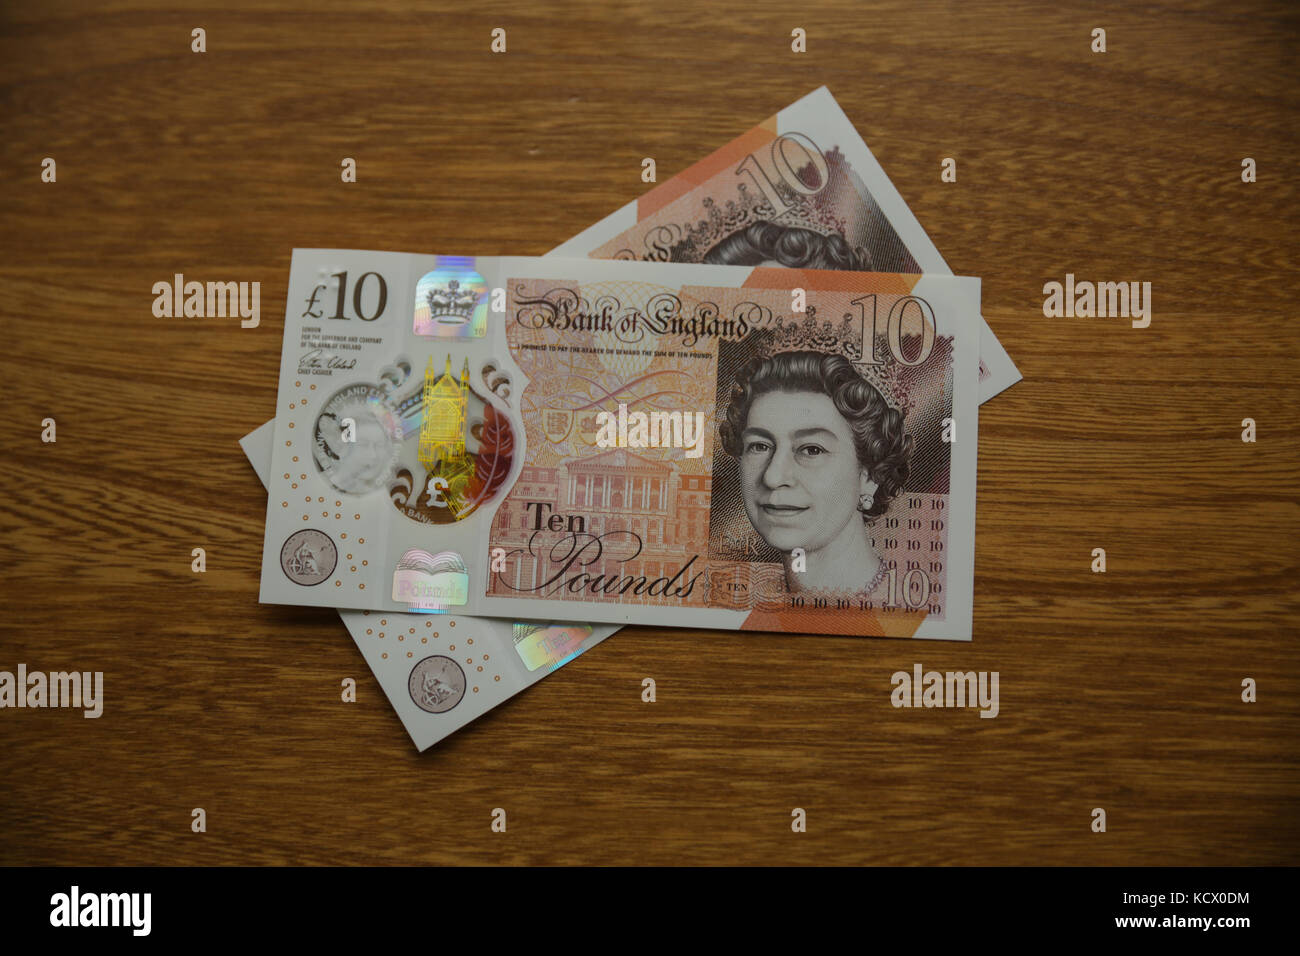 The NEW British Ten Pound note on a wooden surface from above - Stock Image